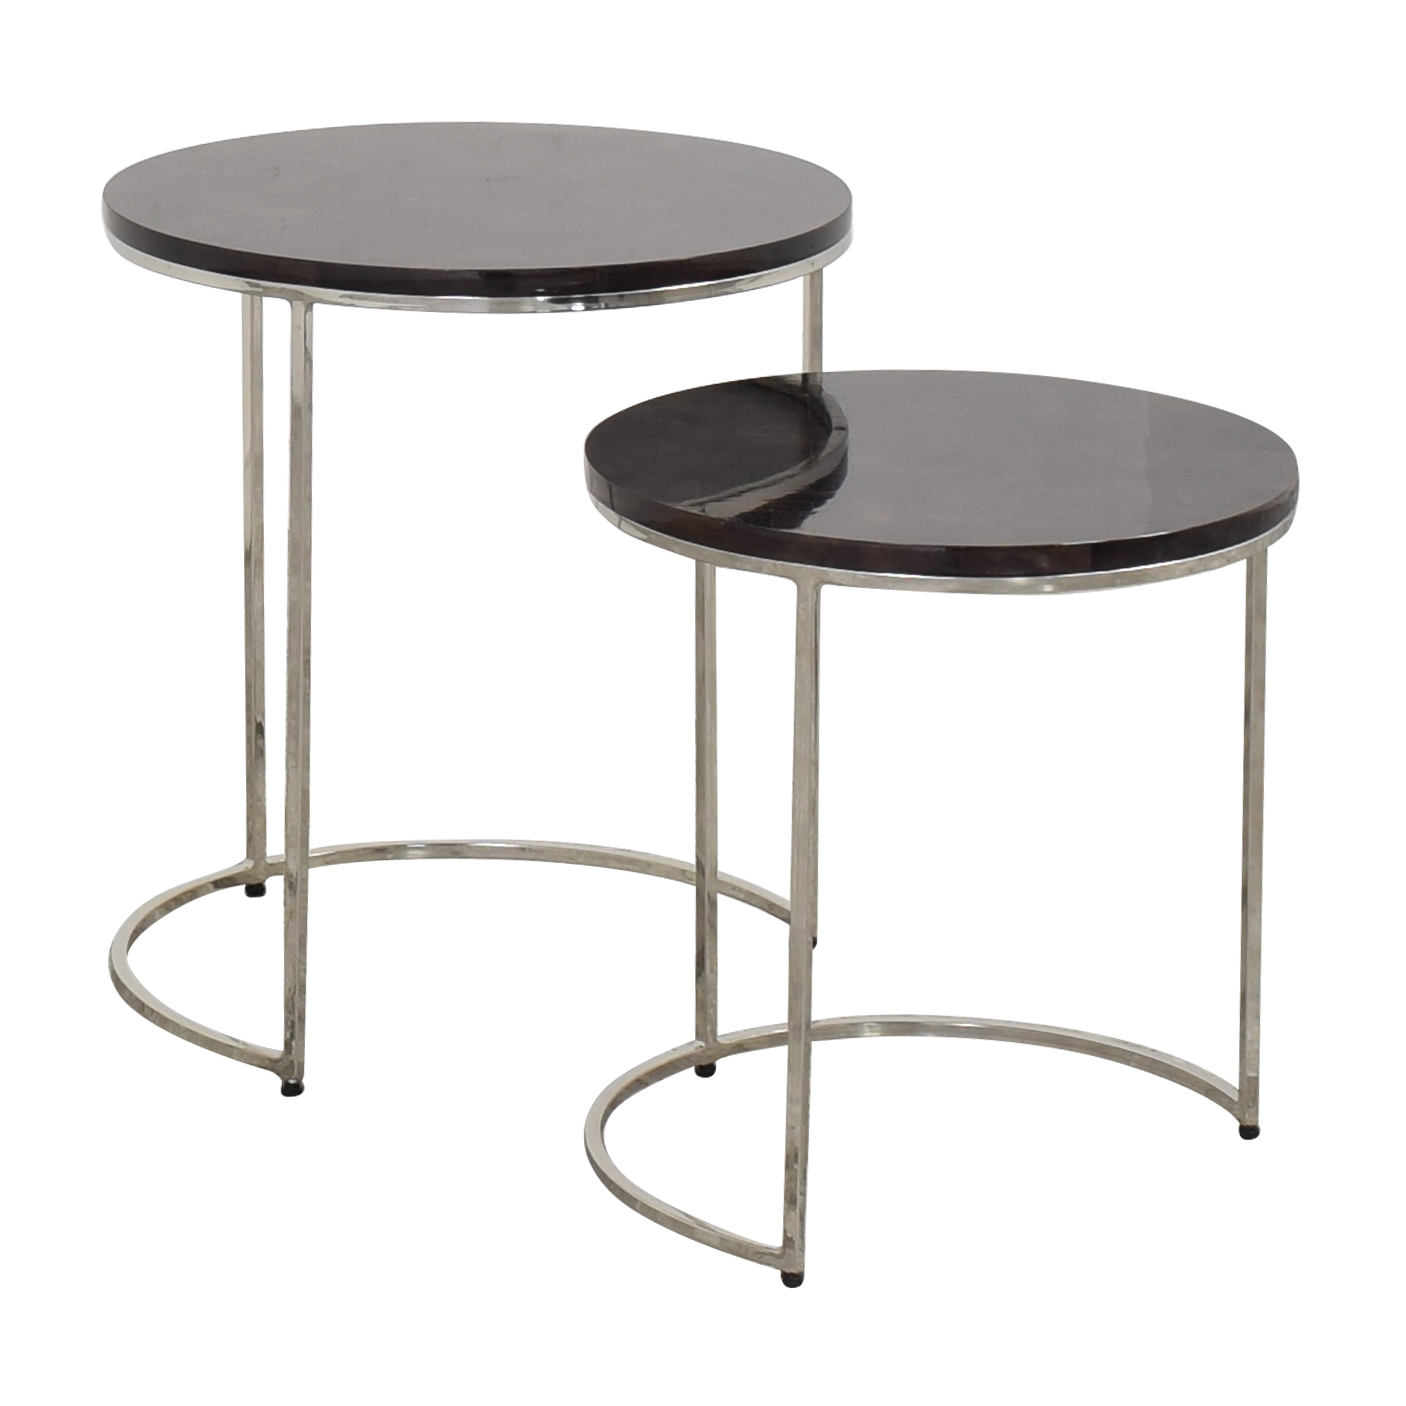 Williams Sonoma Antigua Pen Shell Nesting Tables / Tables